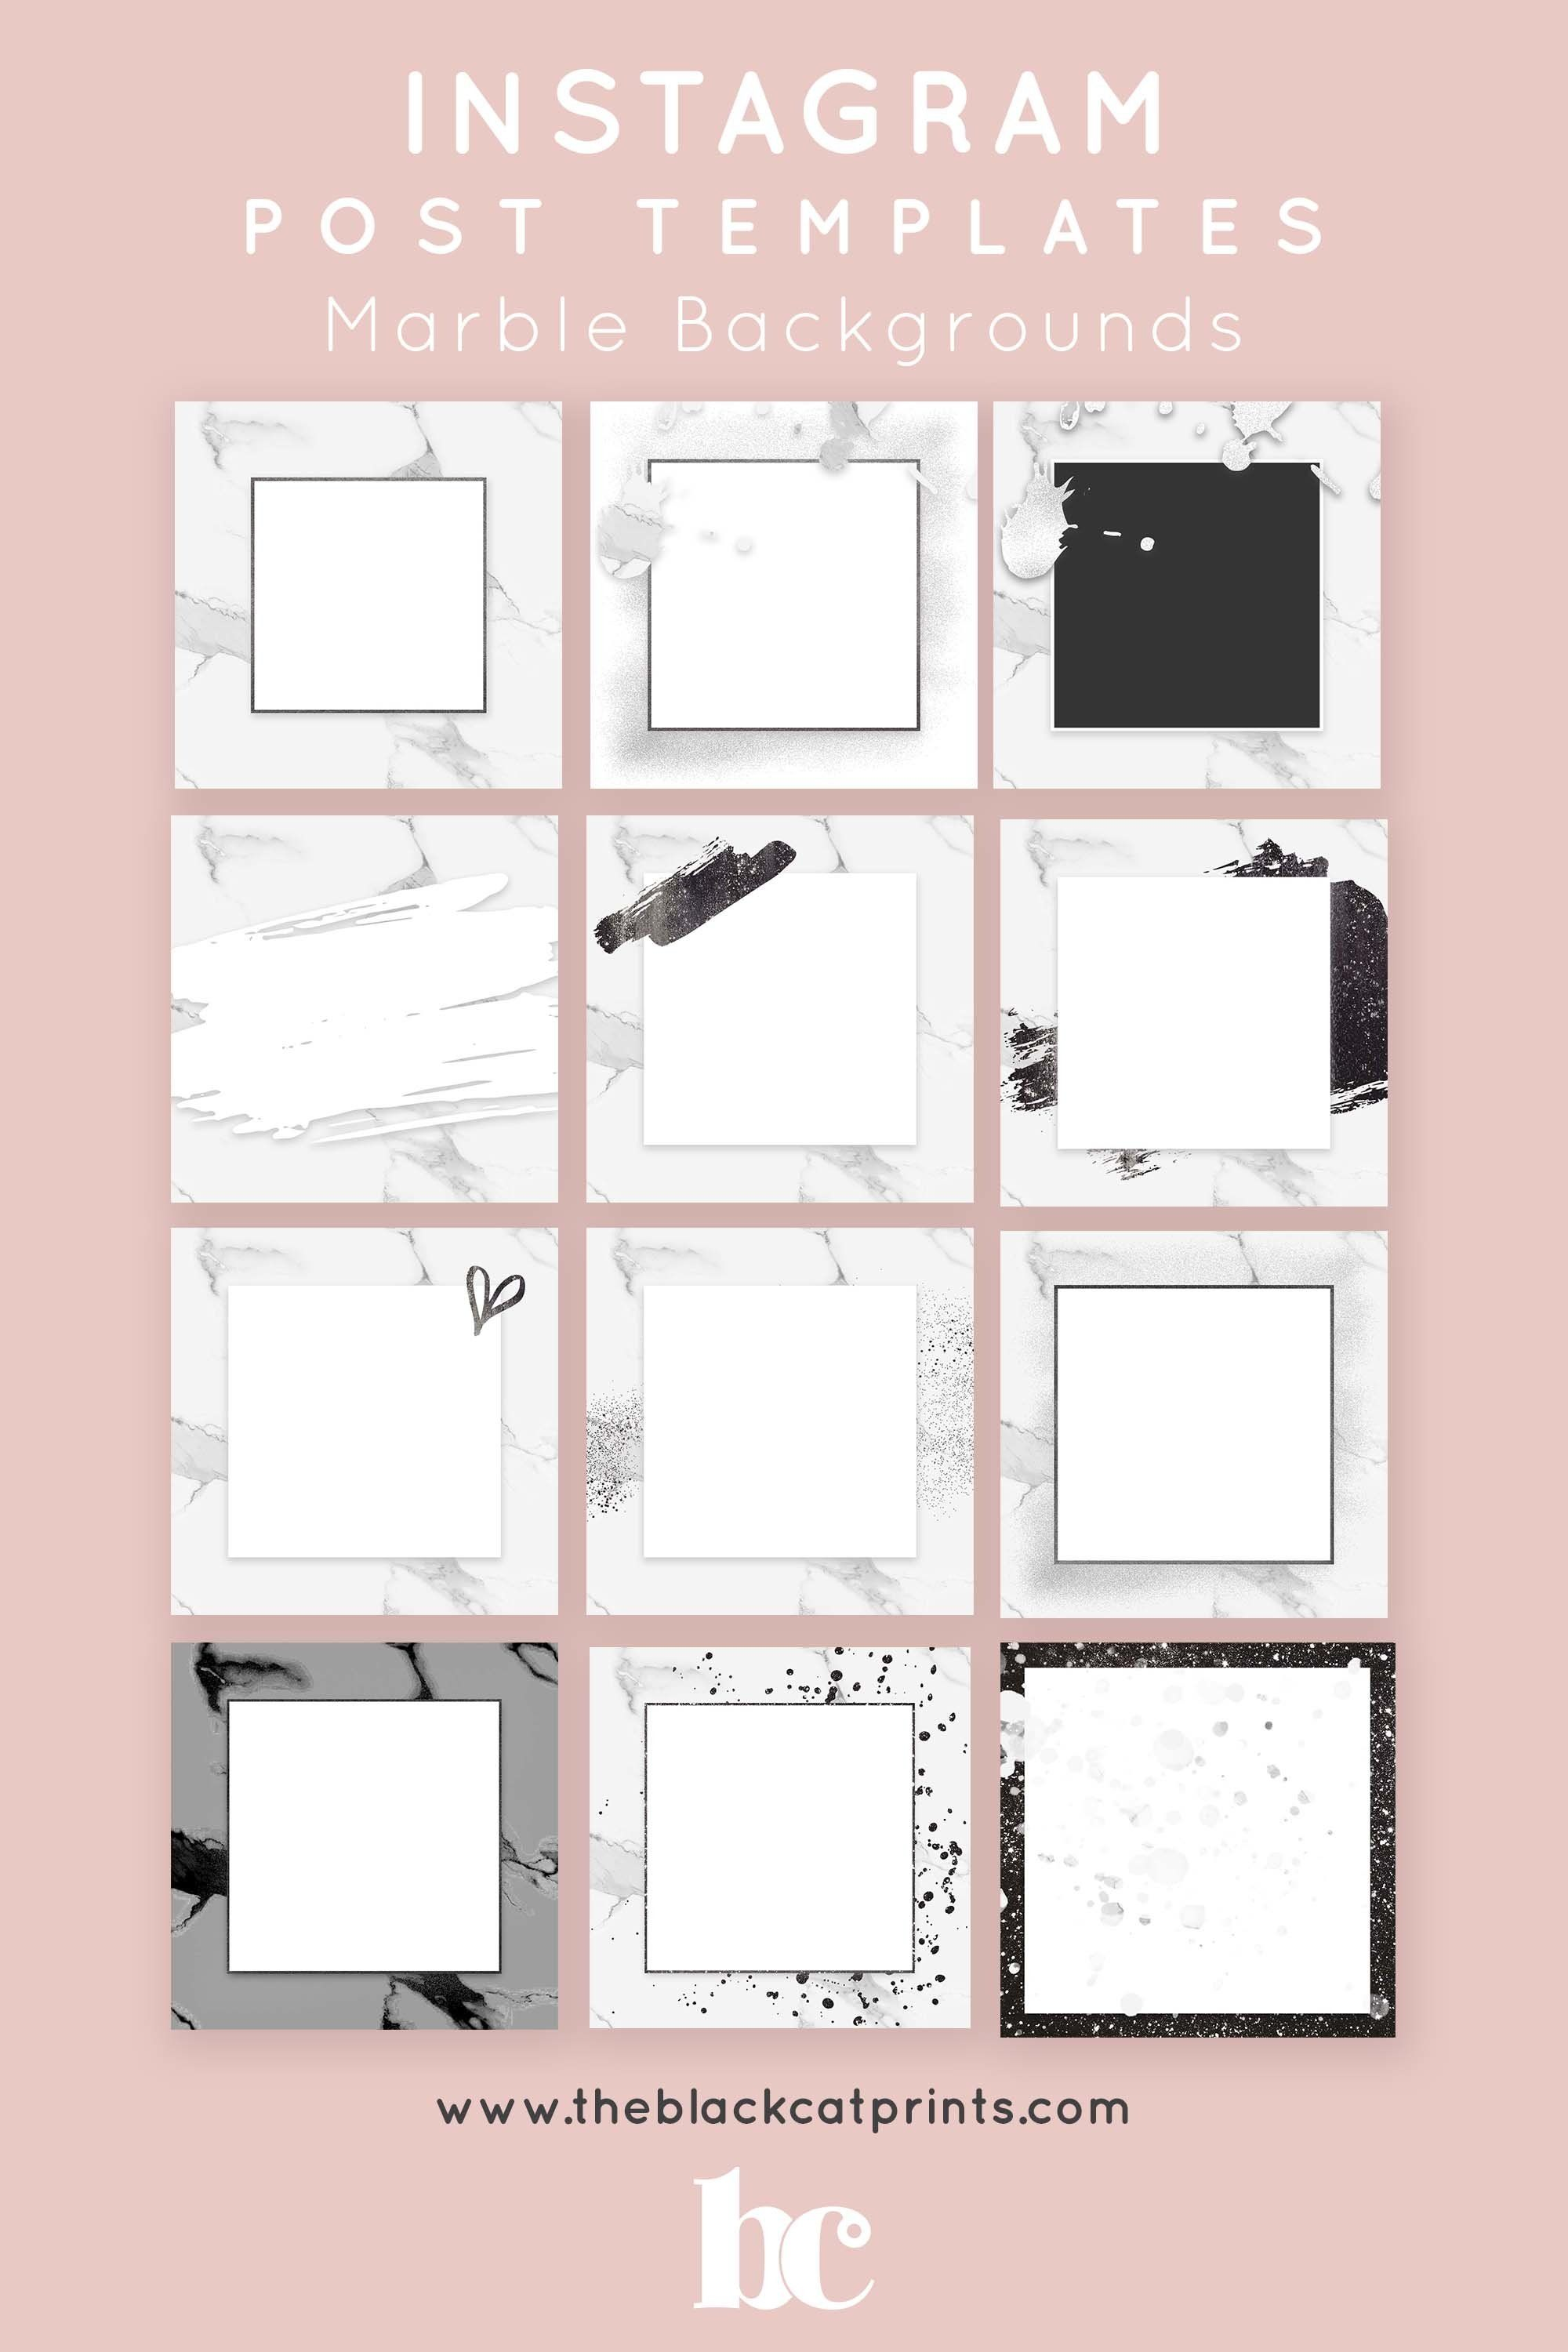 Black And White Marble Instagram Post And Story Templates 535867 Instagram Design Bundles In 2021 Instagram Template Design Instagram Design Instagram Posts